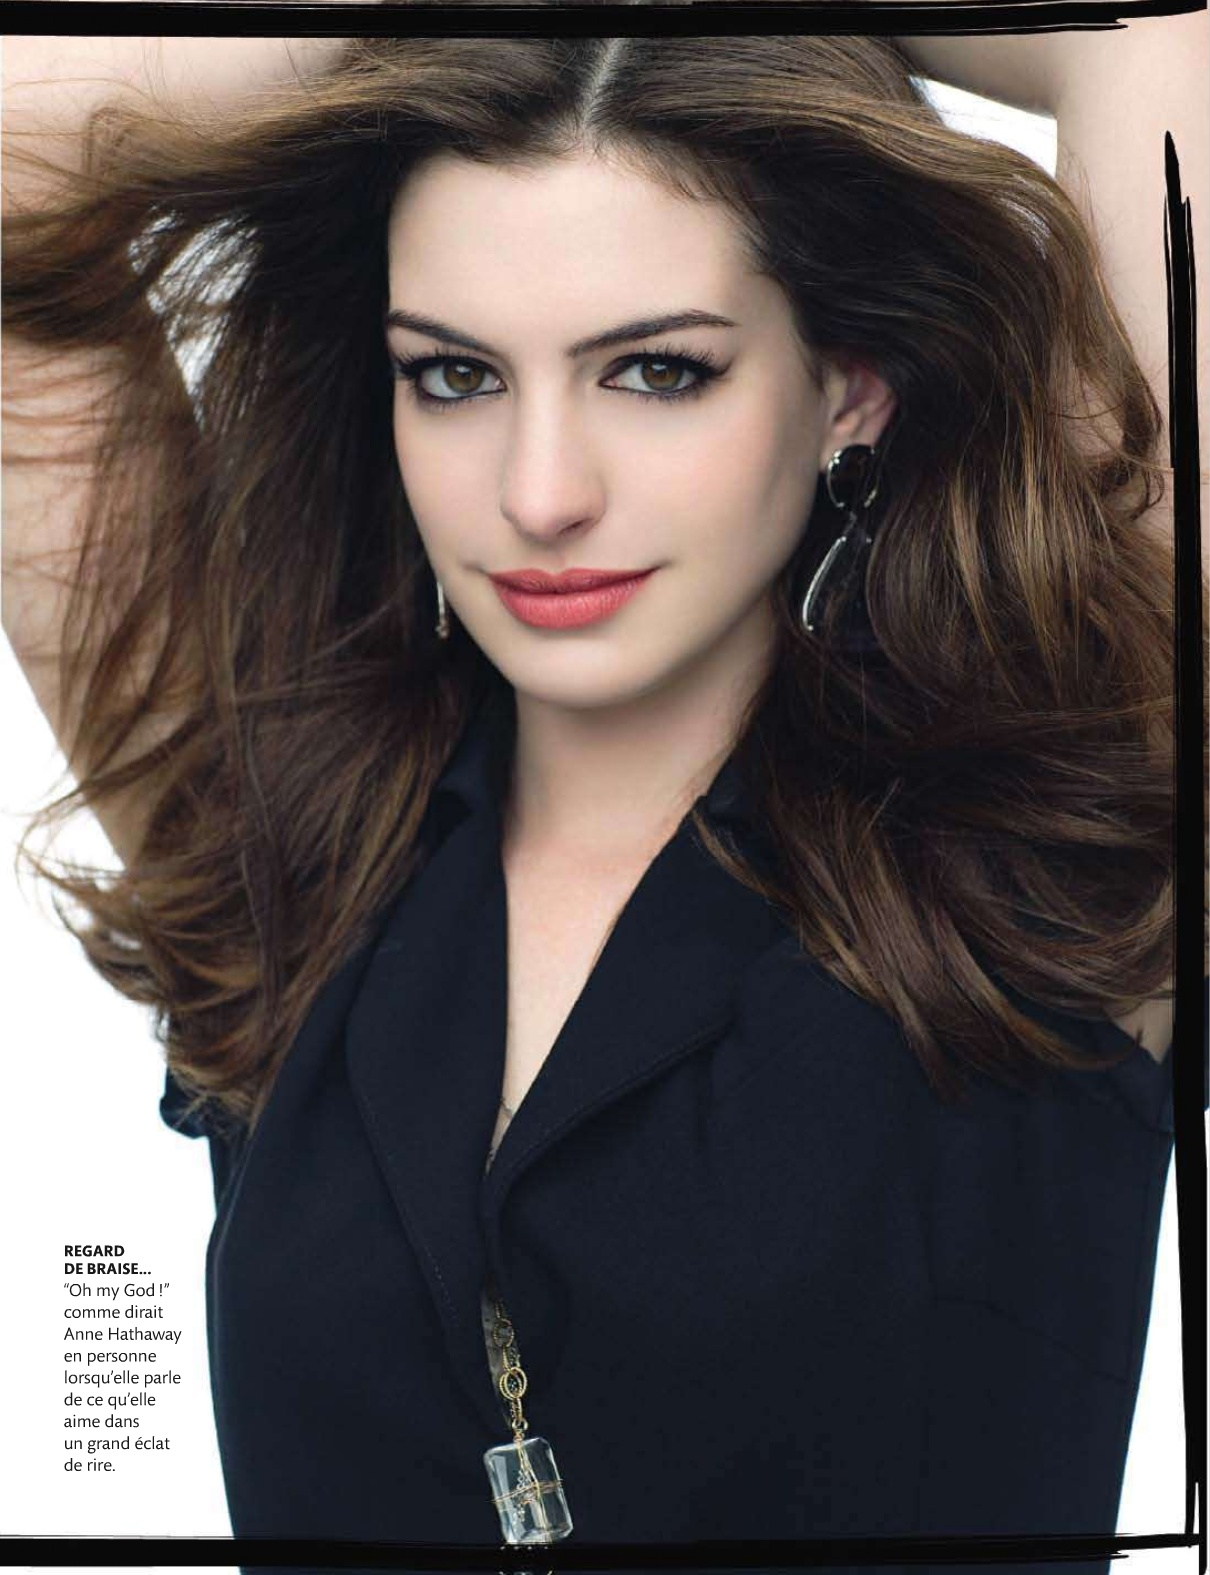 Anne Hathaway From This Article Anne Hathaway Wikimedia Commons